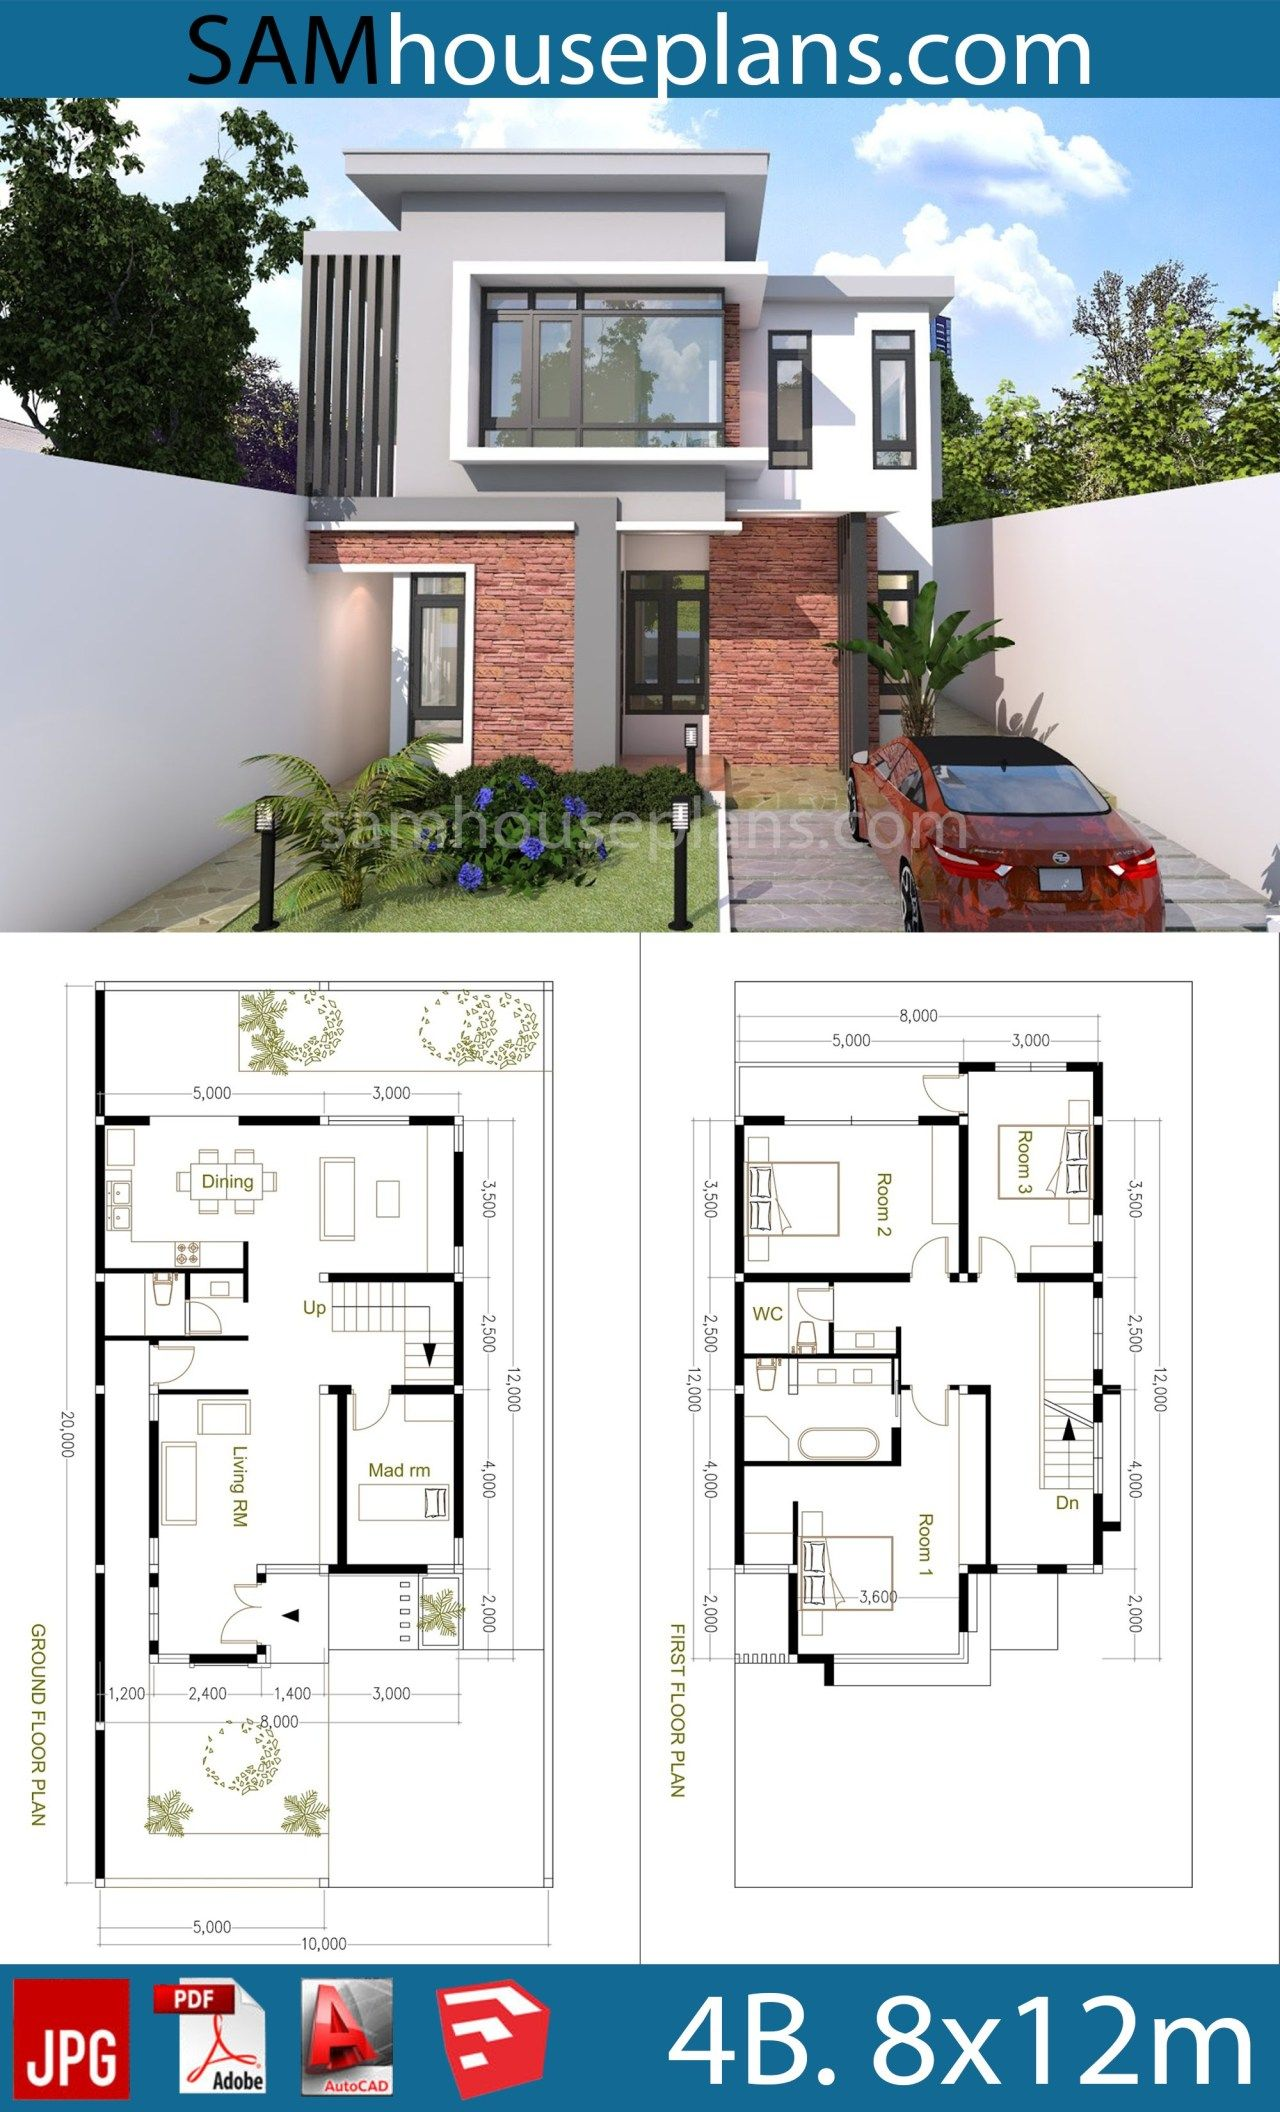 House Plans 8x12m With 4 Bedrooms Sam House Plans Sims House Plans Family House Plans Duplex House Design